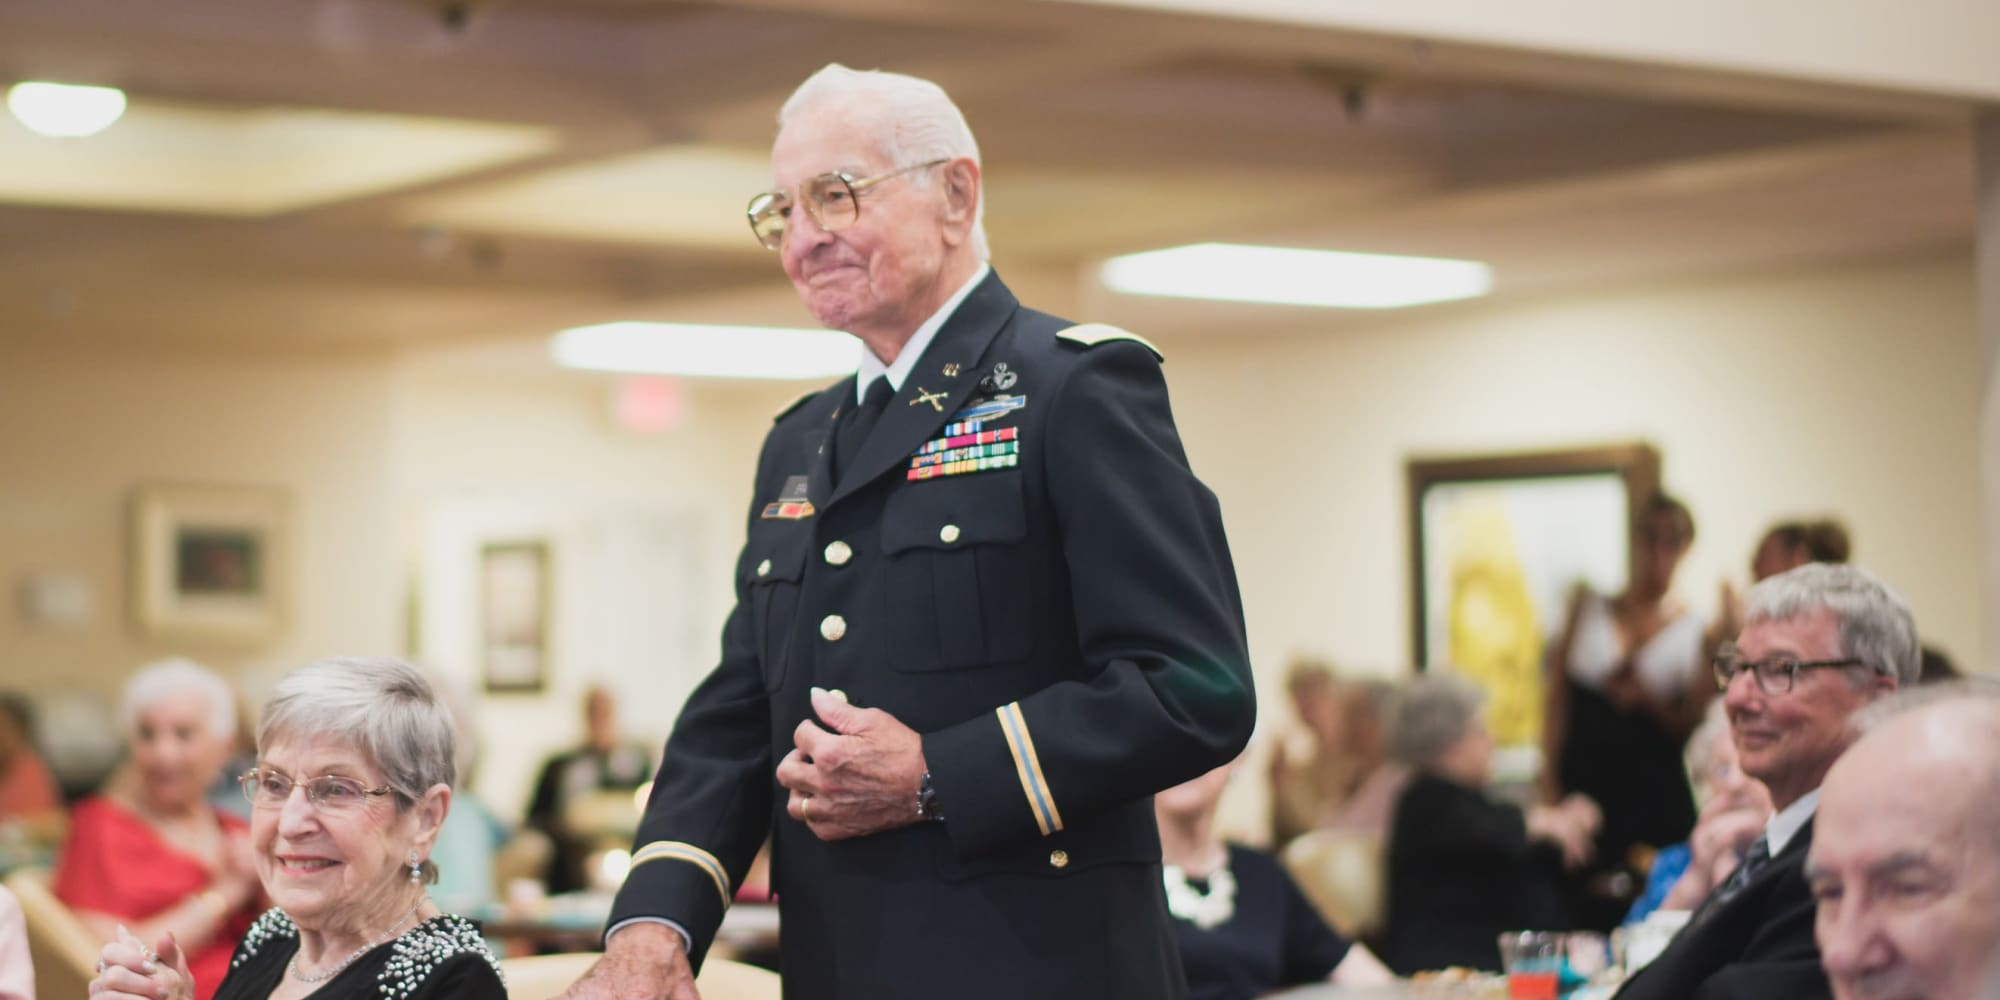 A veteran resident being honored at Liberty Heights Gracious Retirement Living in Rockwall, Texas